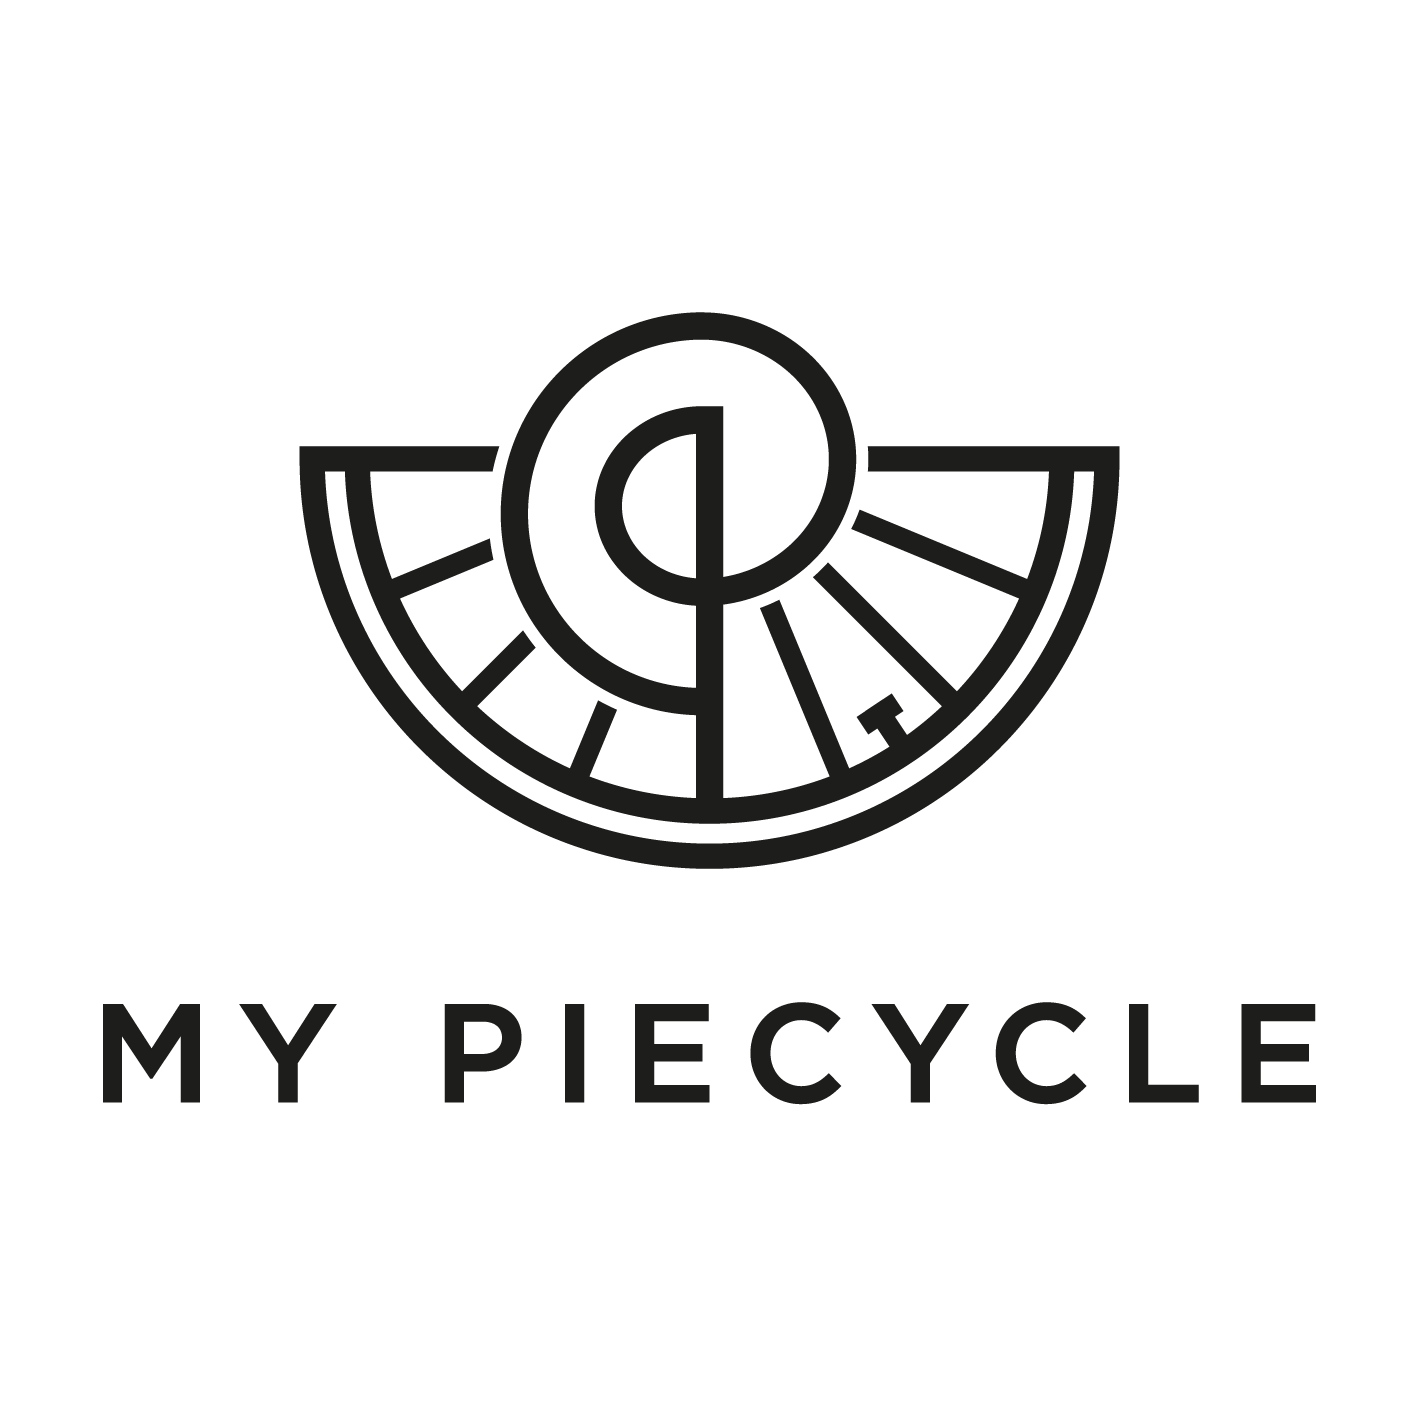 Piecycle Trinkkultur